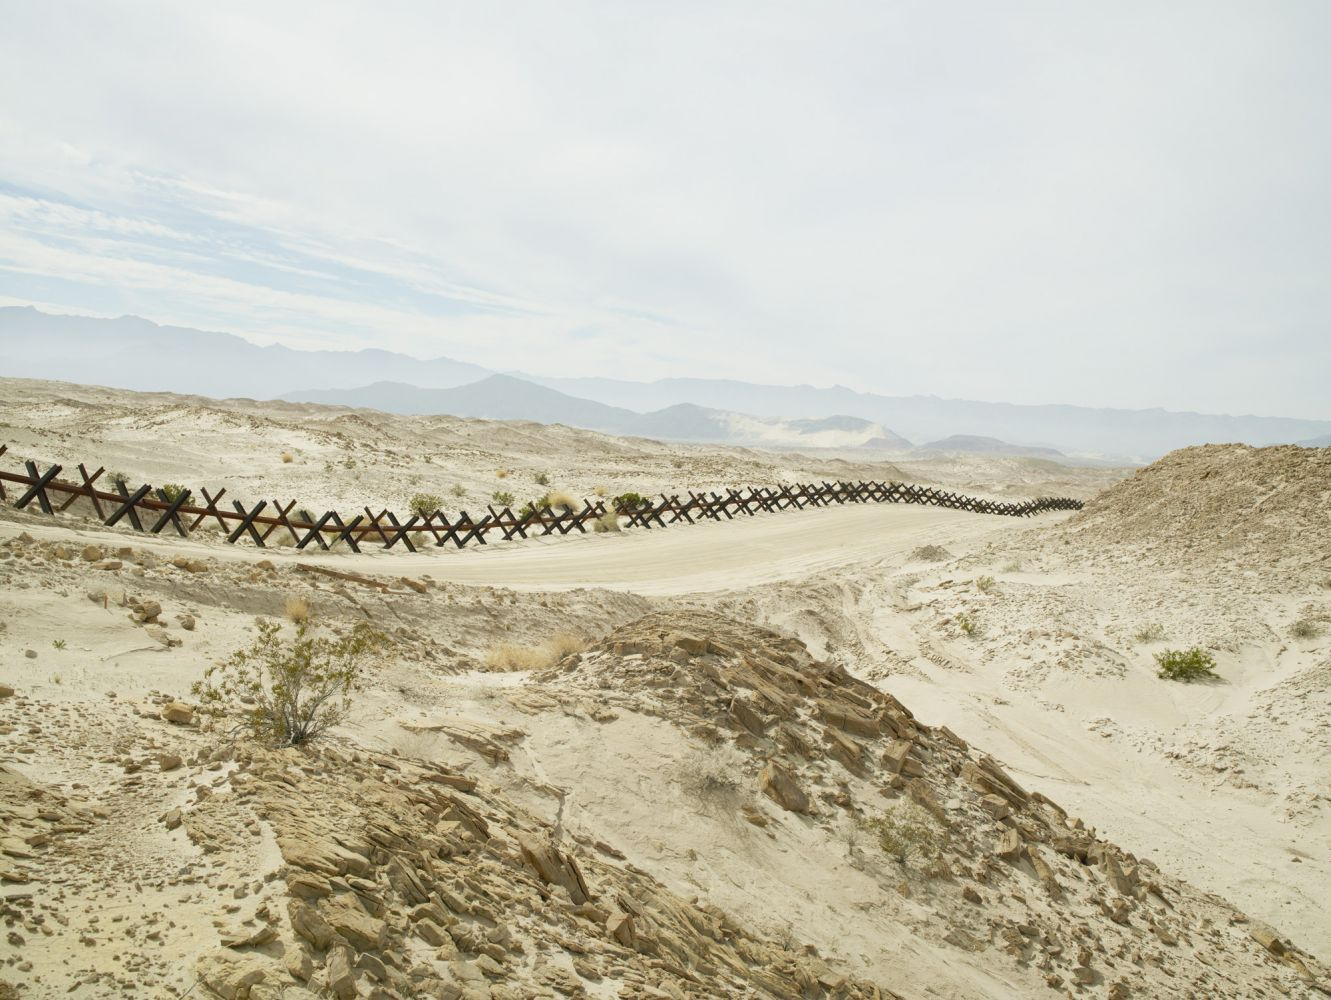 Normandy Wall Near Ocotillo, California, 2015